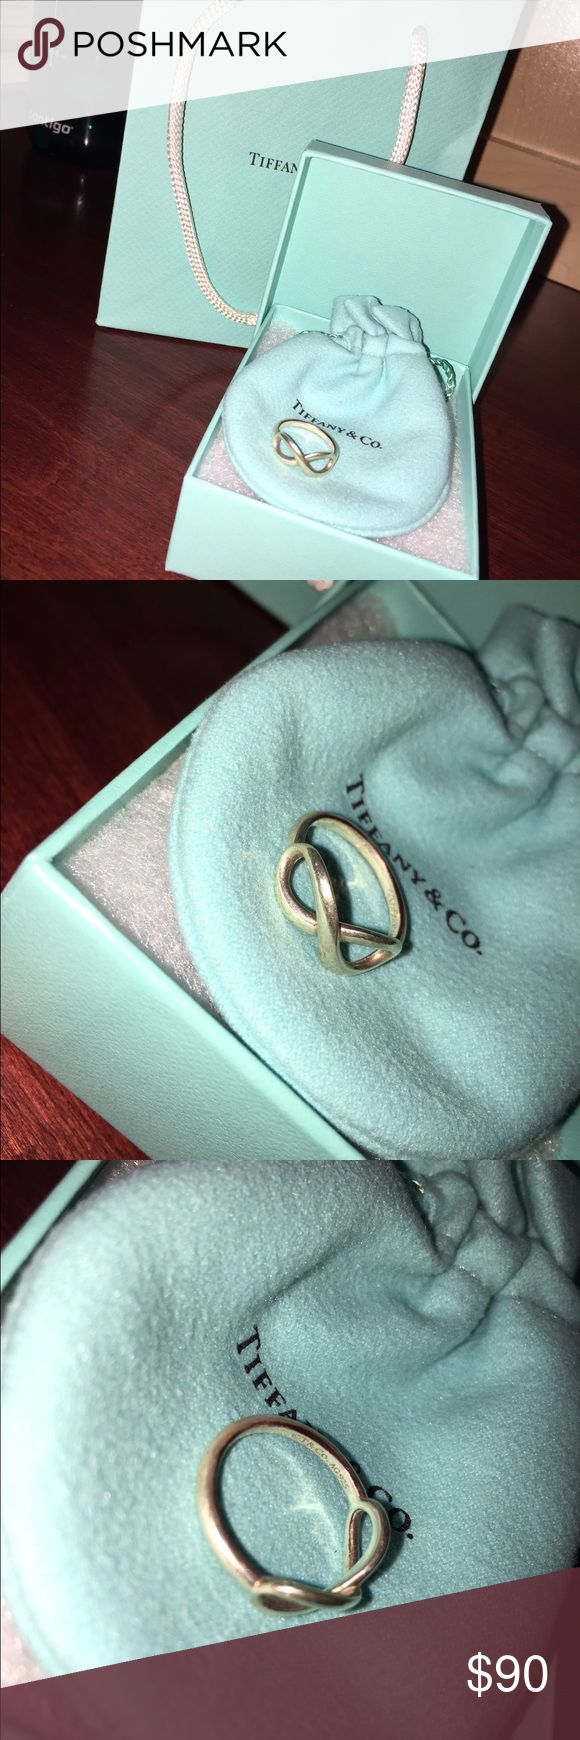 Tiffany and company infinite ring I'm excellent shape!! Tiffany & Co. Jewelry Rings